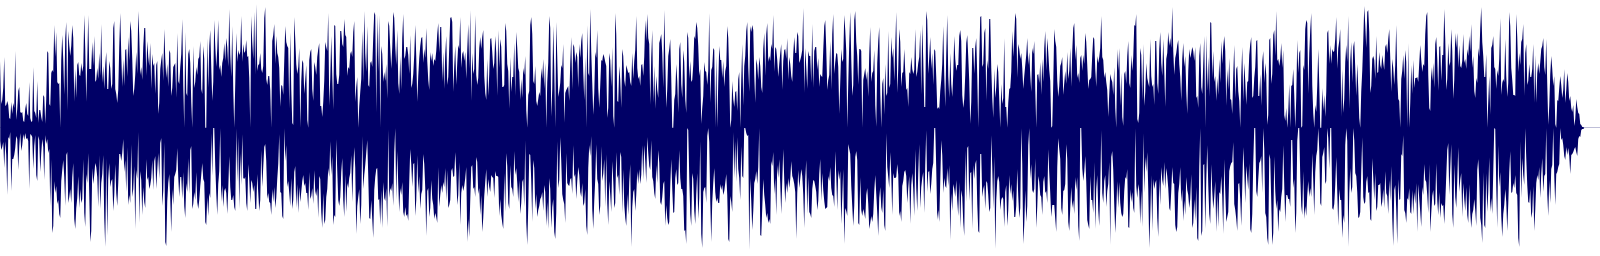 waveform of track #132651